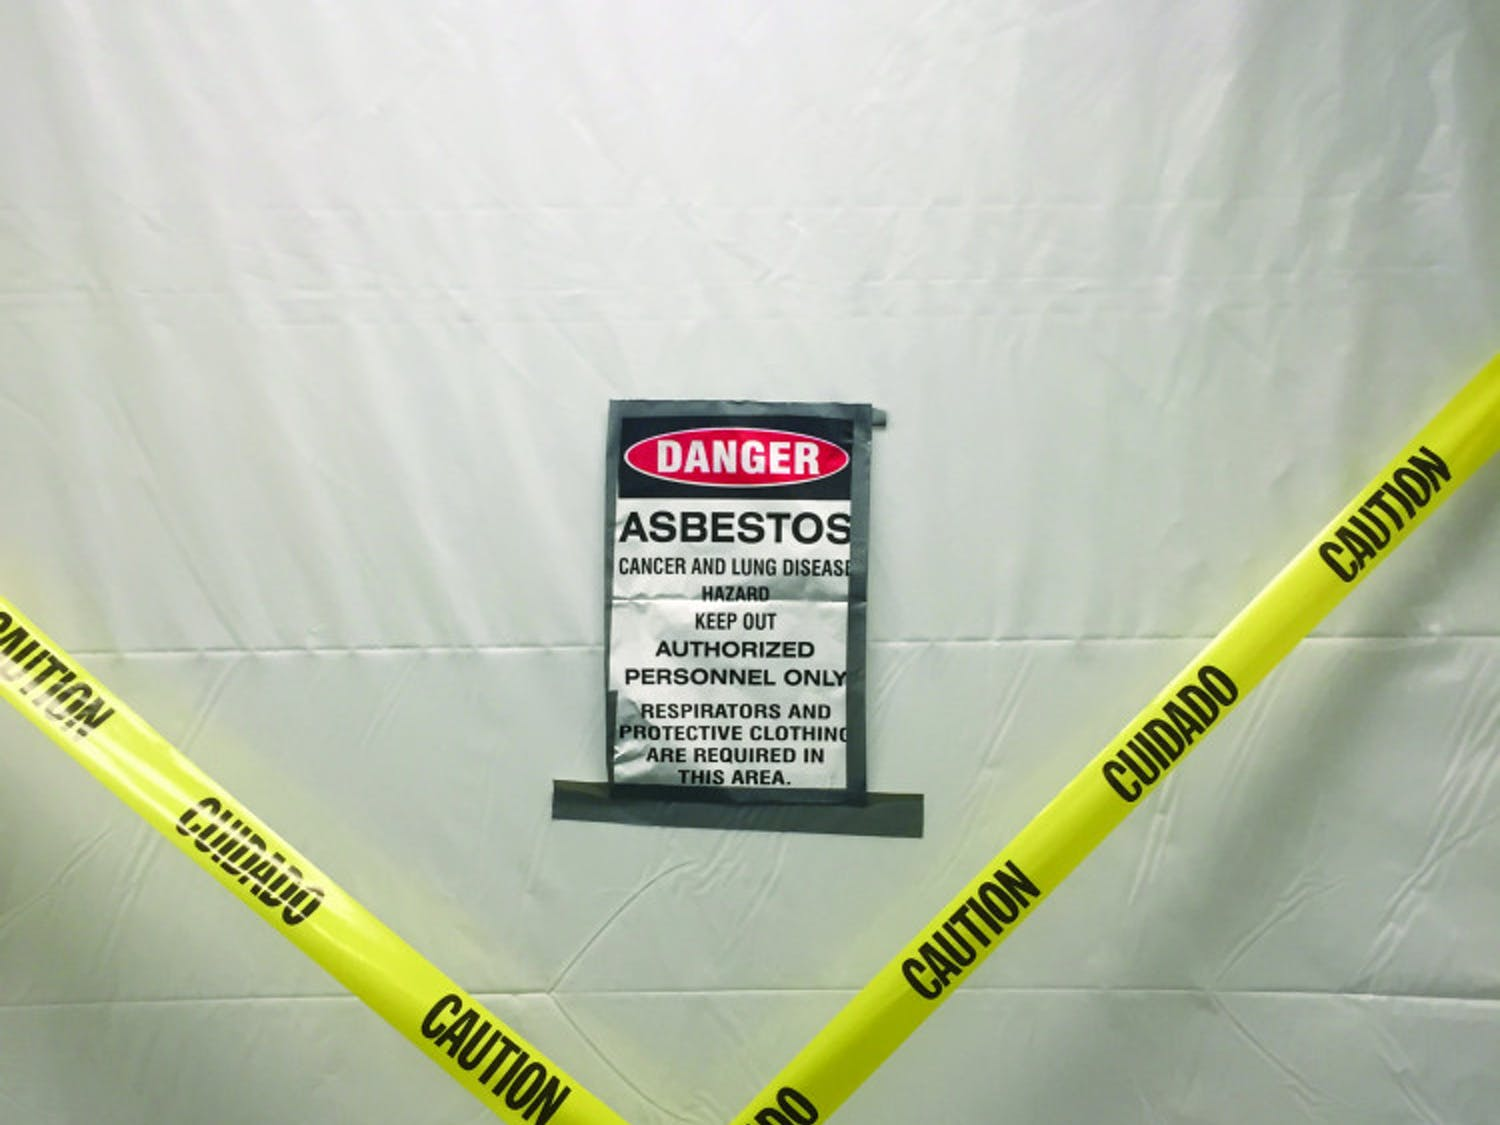 Signs in the Reitz Union warn of asbestos. Parts of the Lower Level of the Reitz Union are closed for renovations.